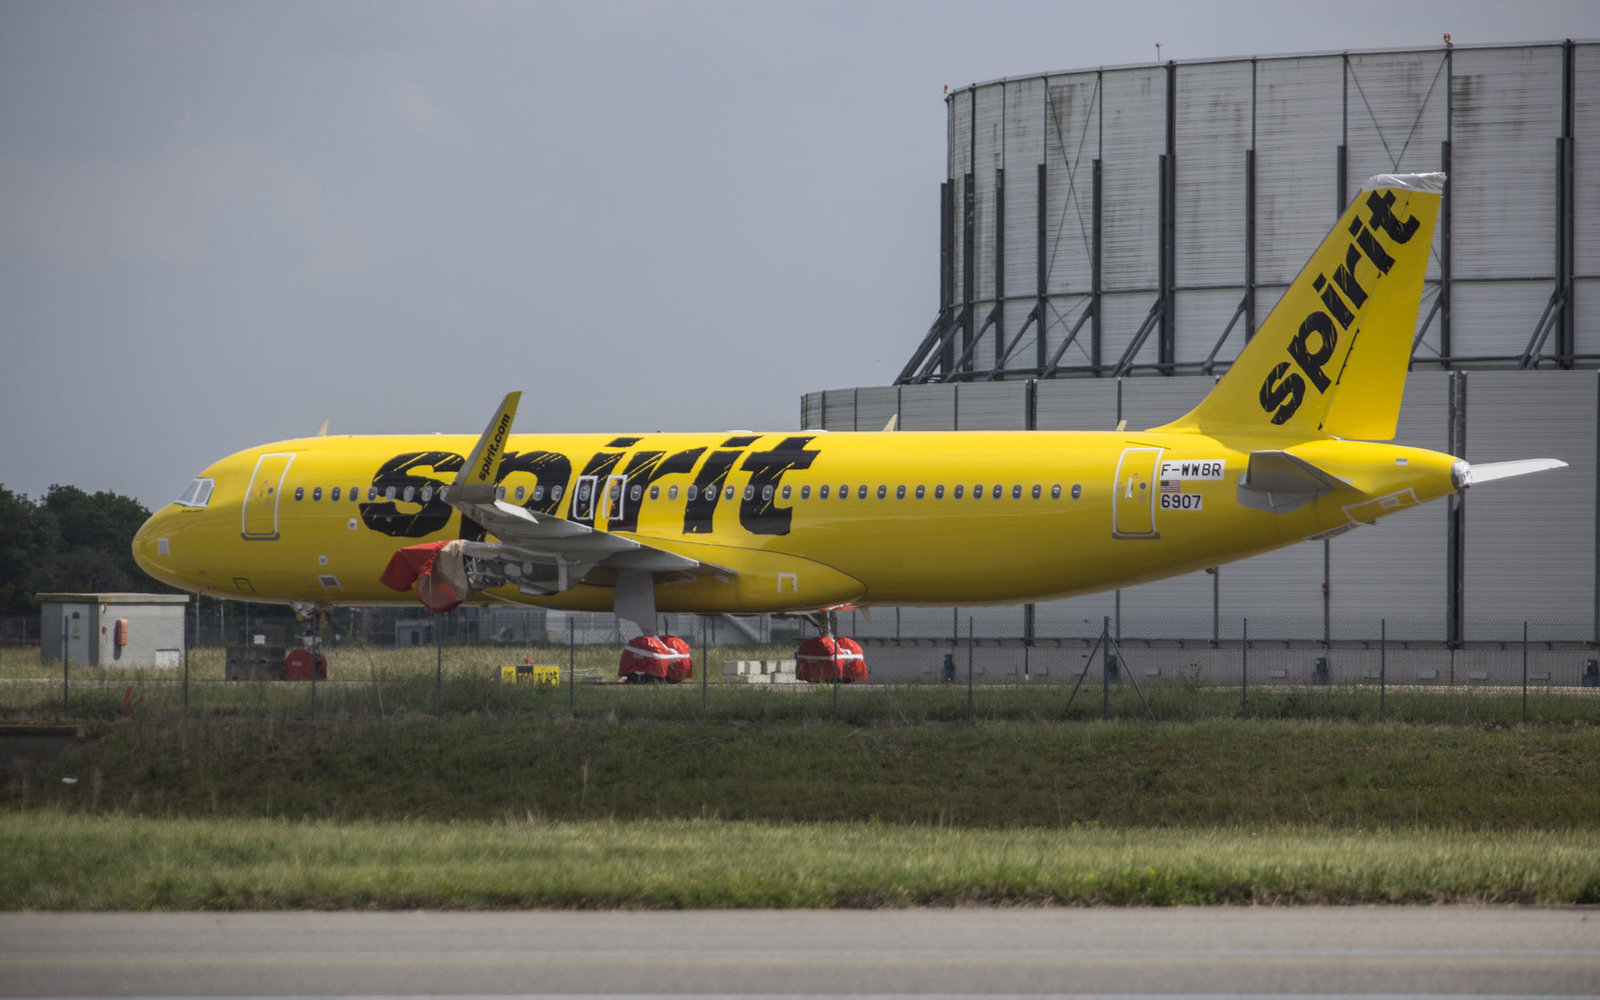 A Spirit Airlines aircraft sits at the airport.